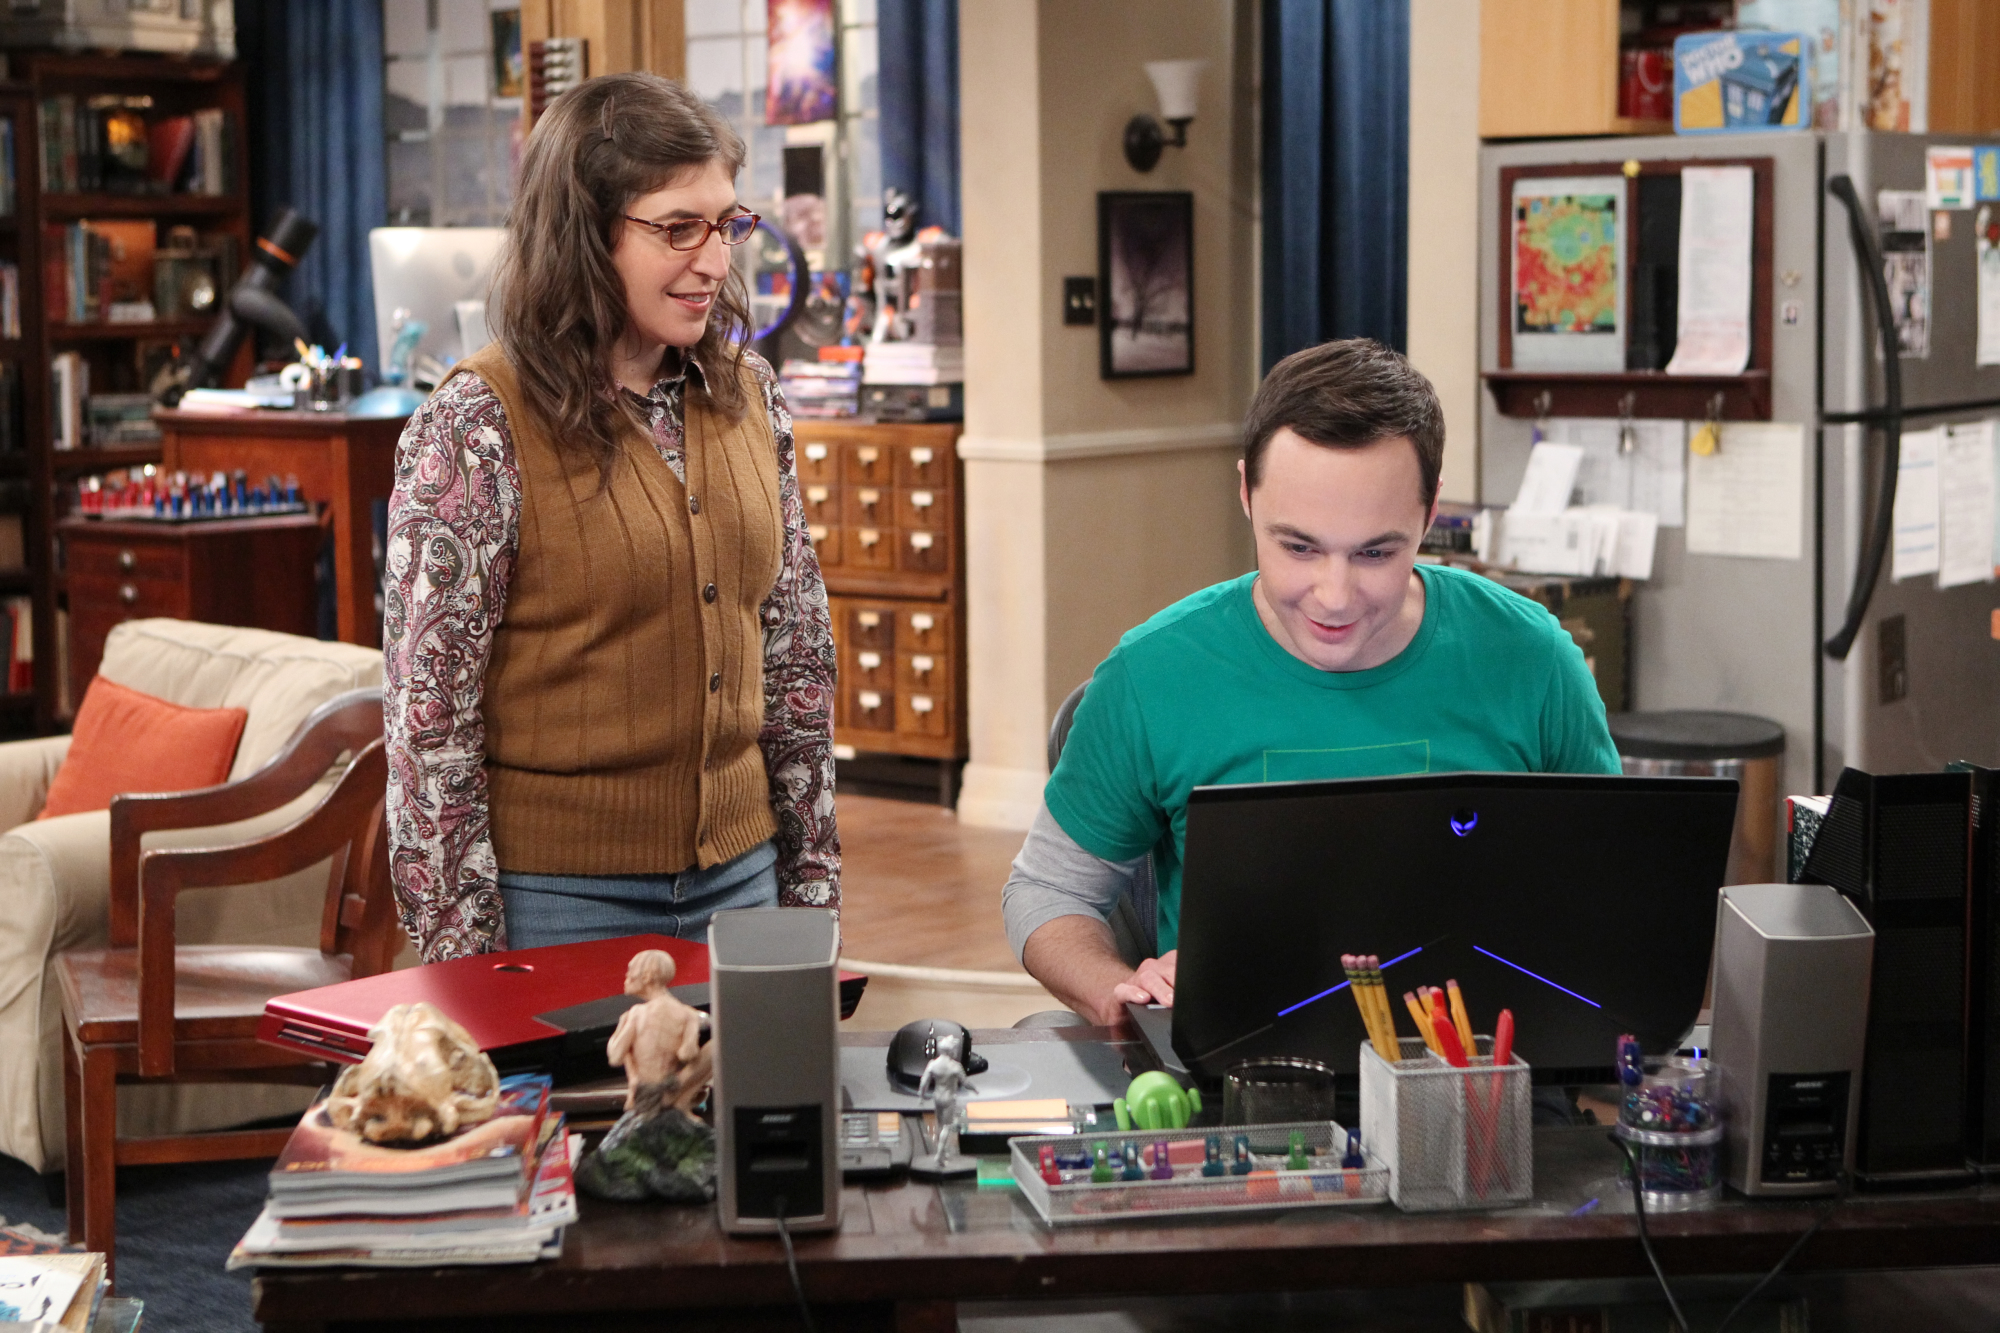 Amy is excited to see that Sheldon likes his new computer.